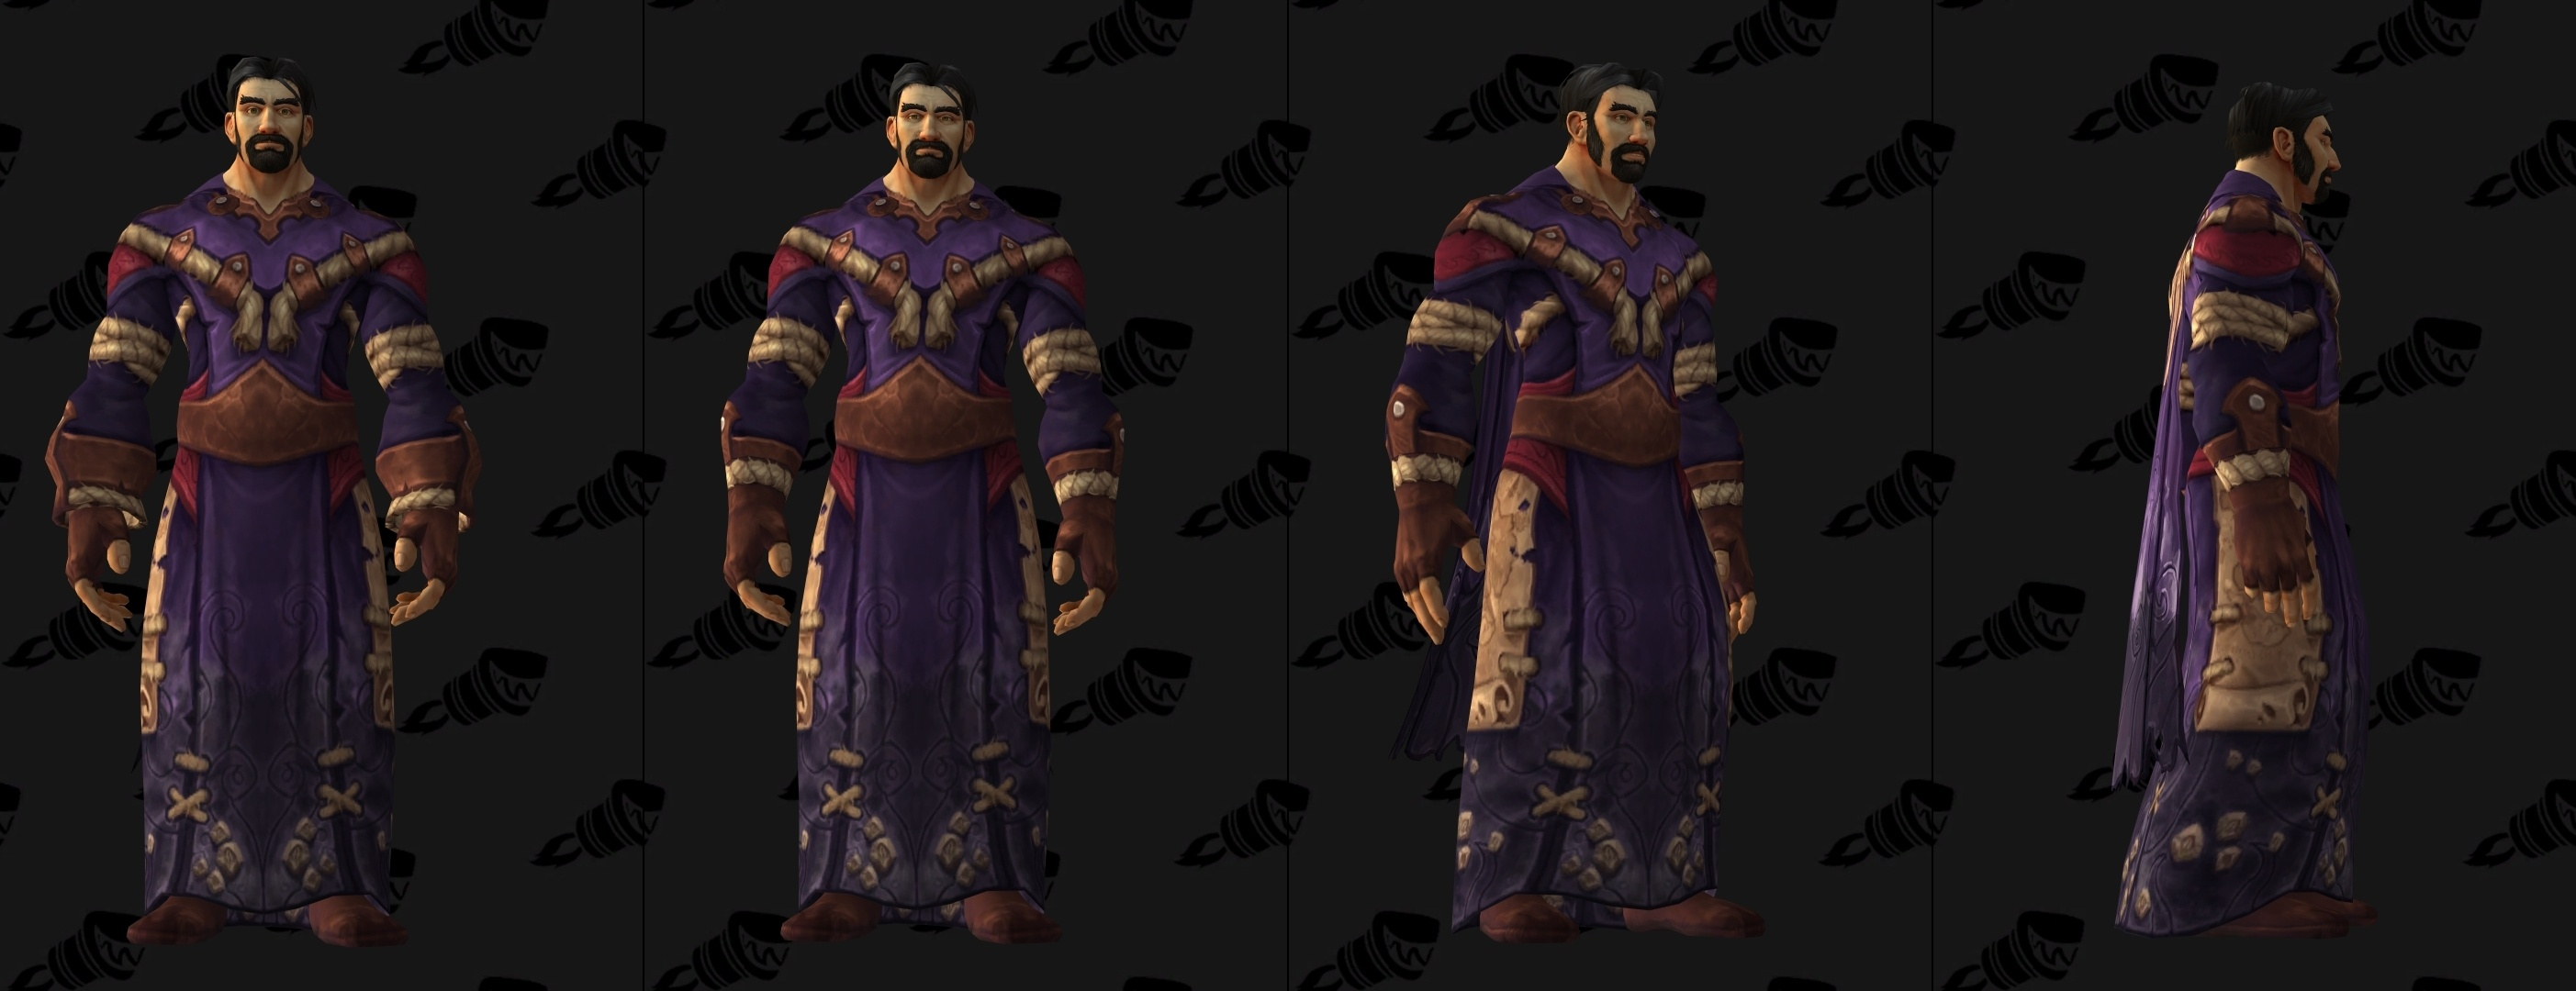 world_of_warcraft_next_expansion_hints_in_new_armour_set